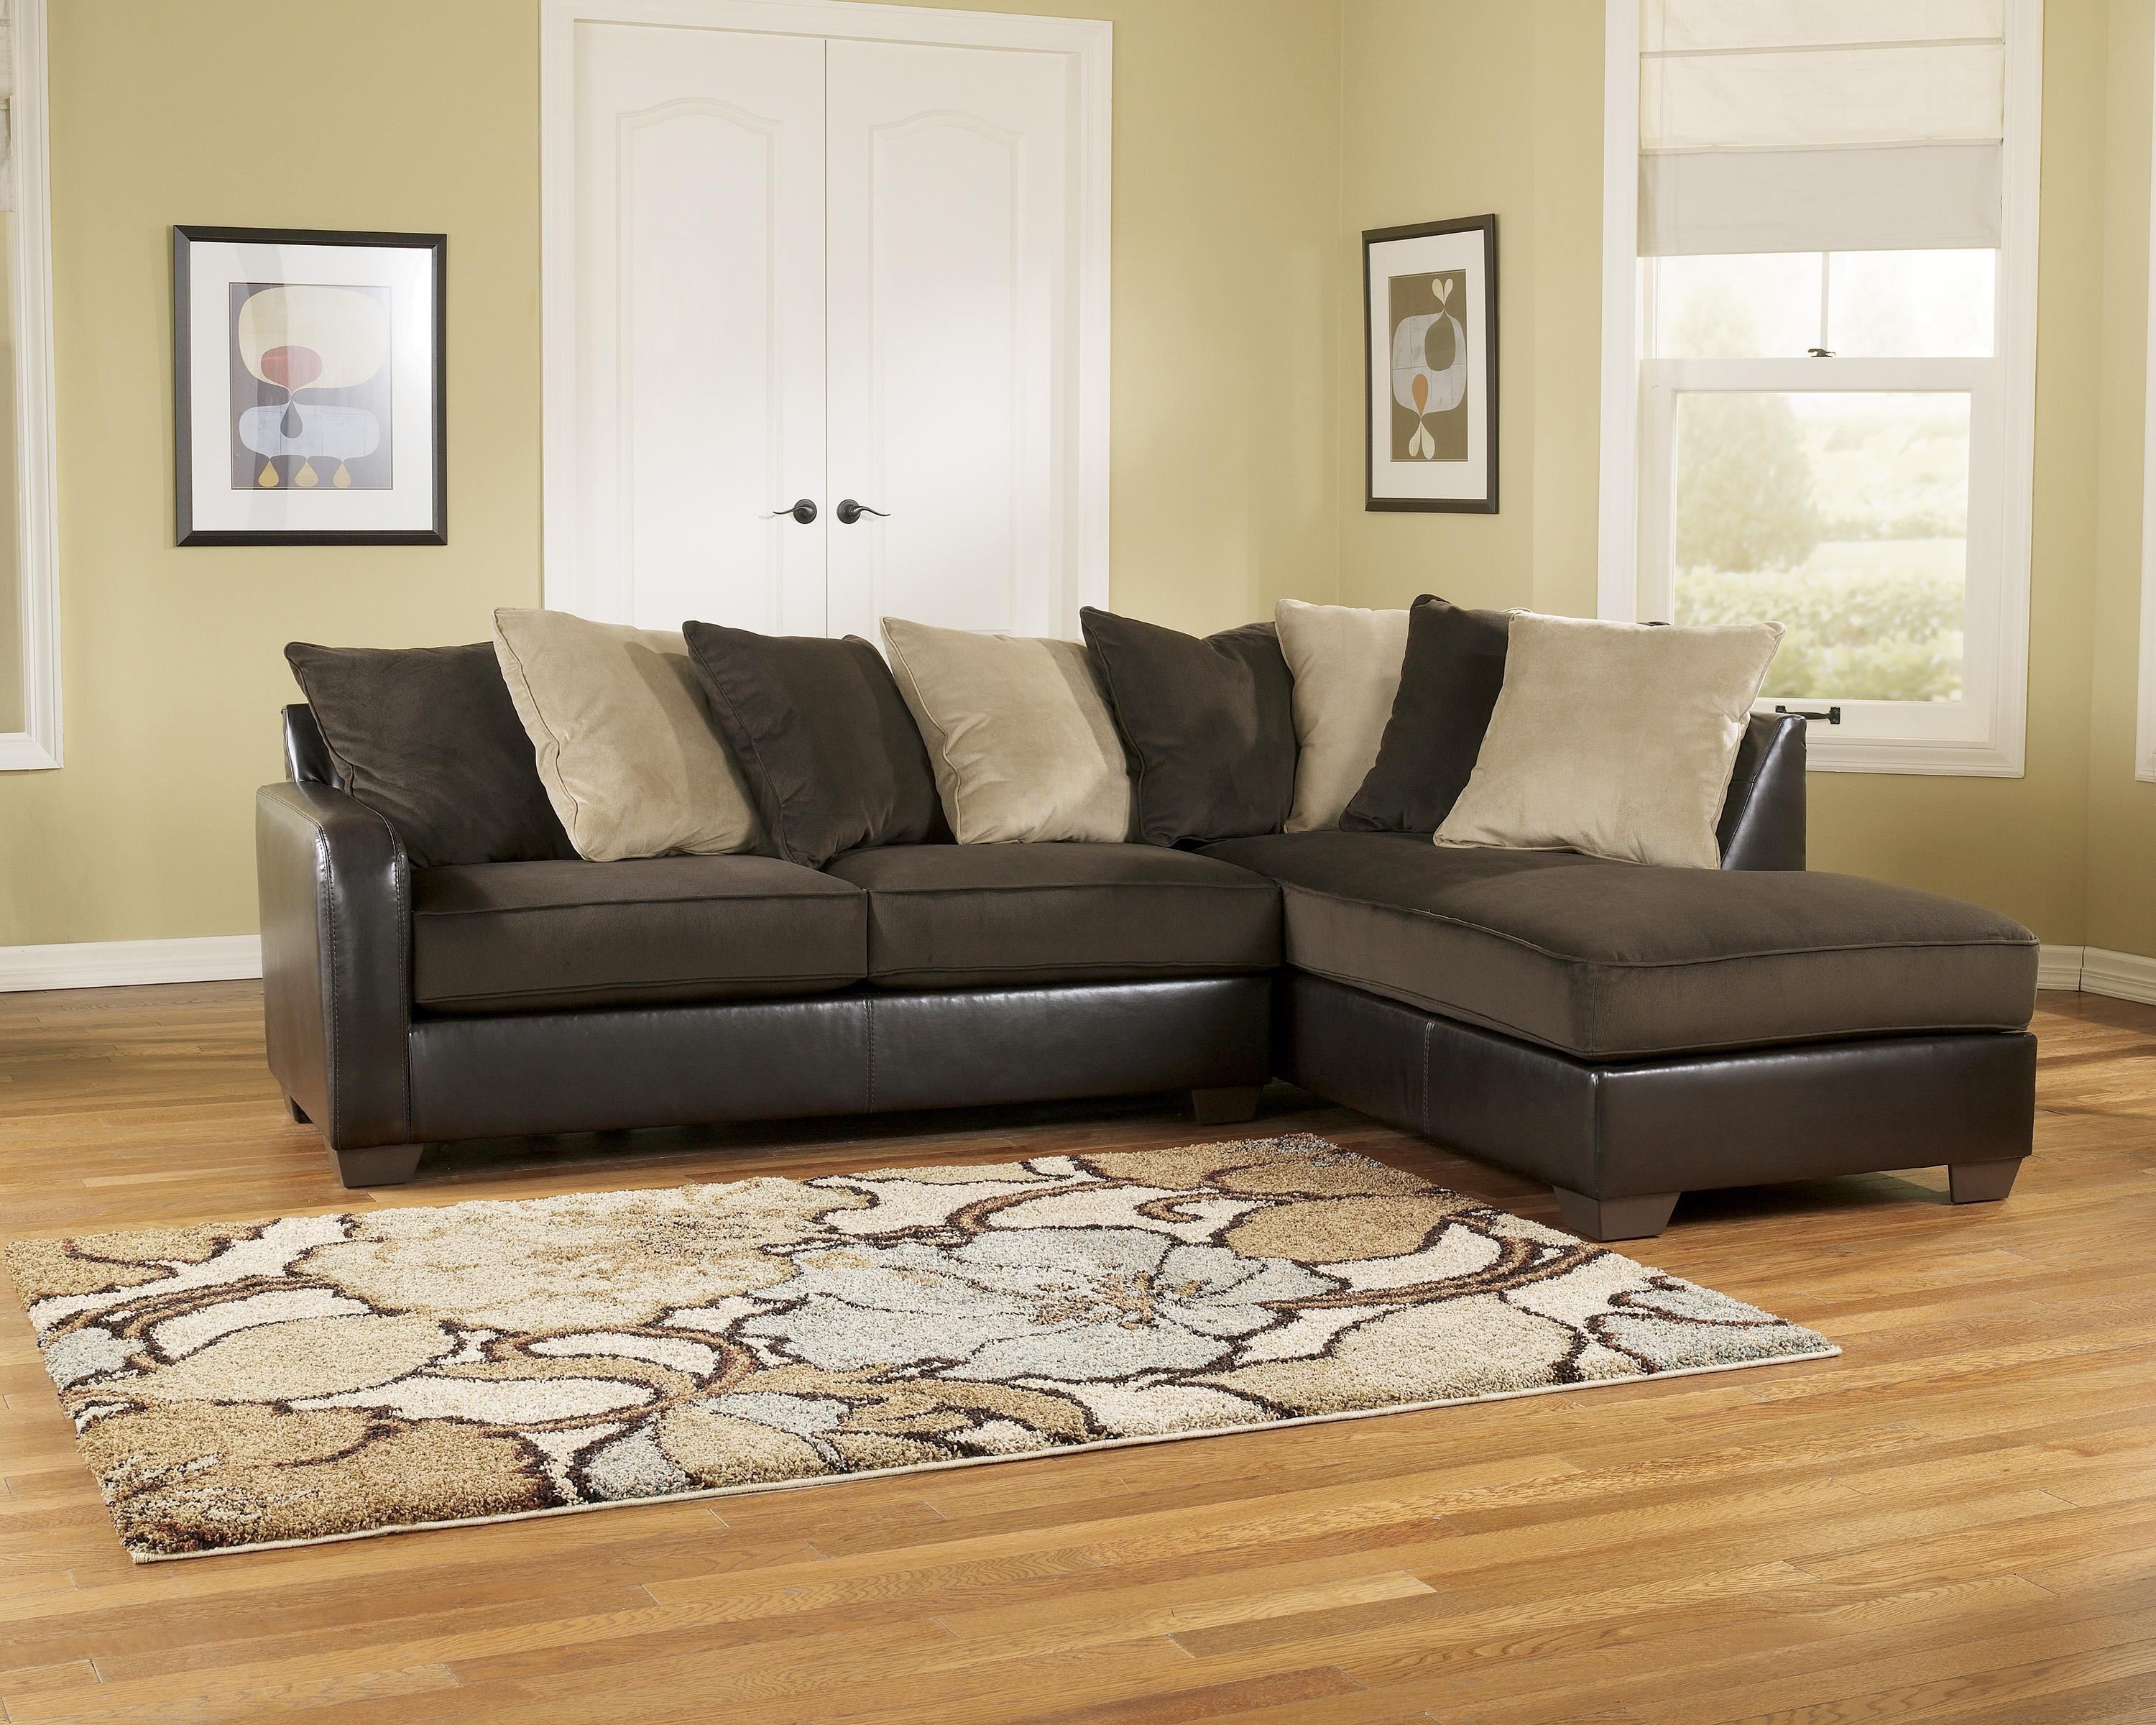 Sofa Setup Ideas 20 Best Ideas Ashley Furniture Brown Corduroy Sectional